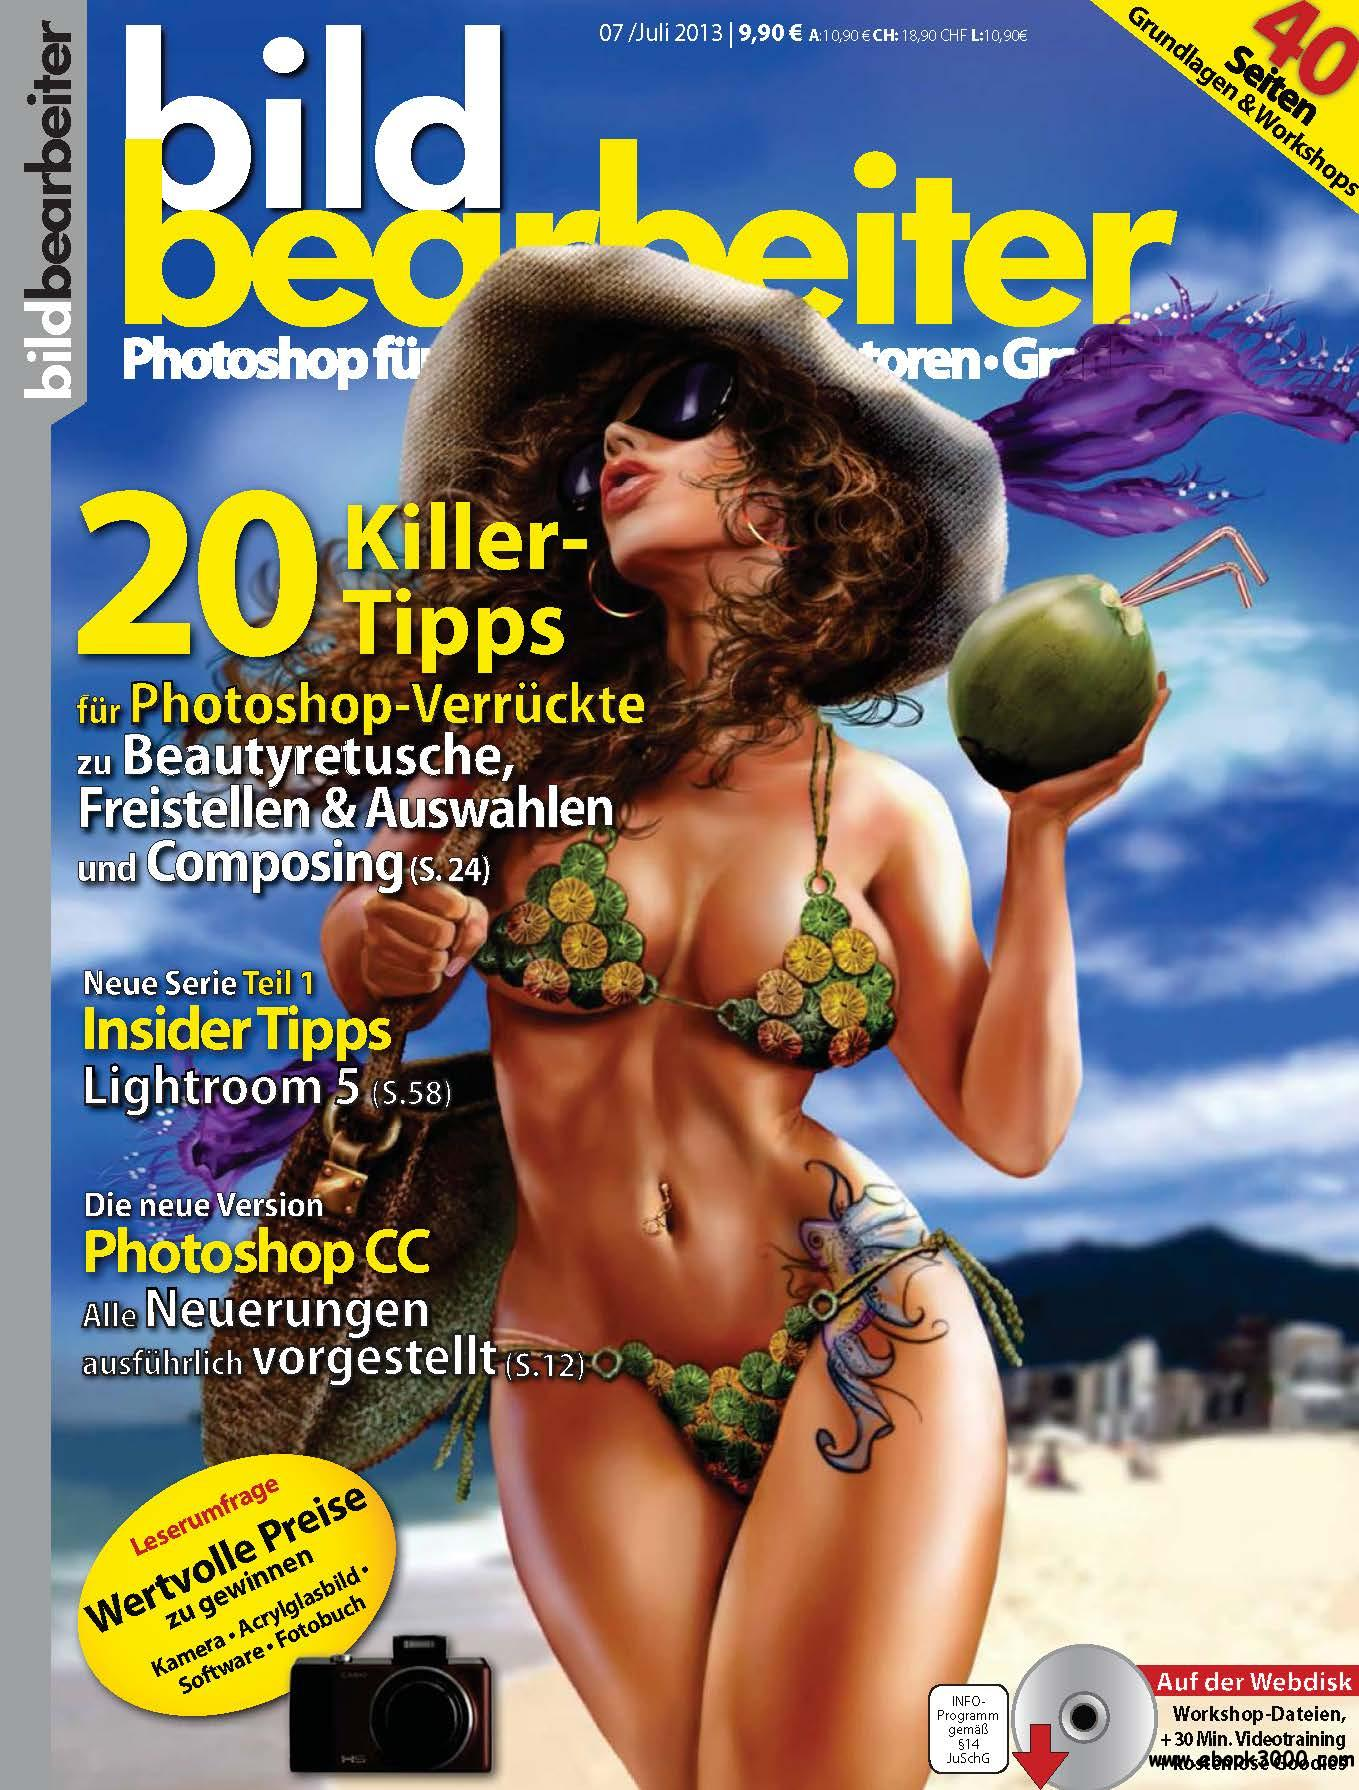 Der Bildbearbeiter Juli 07/2013 free download